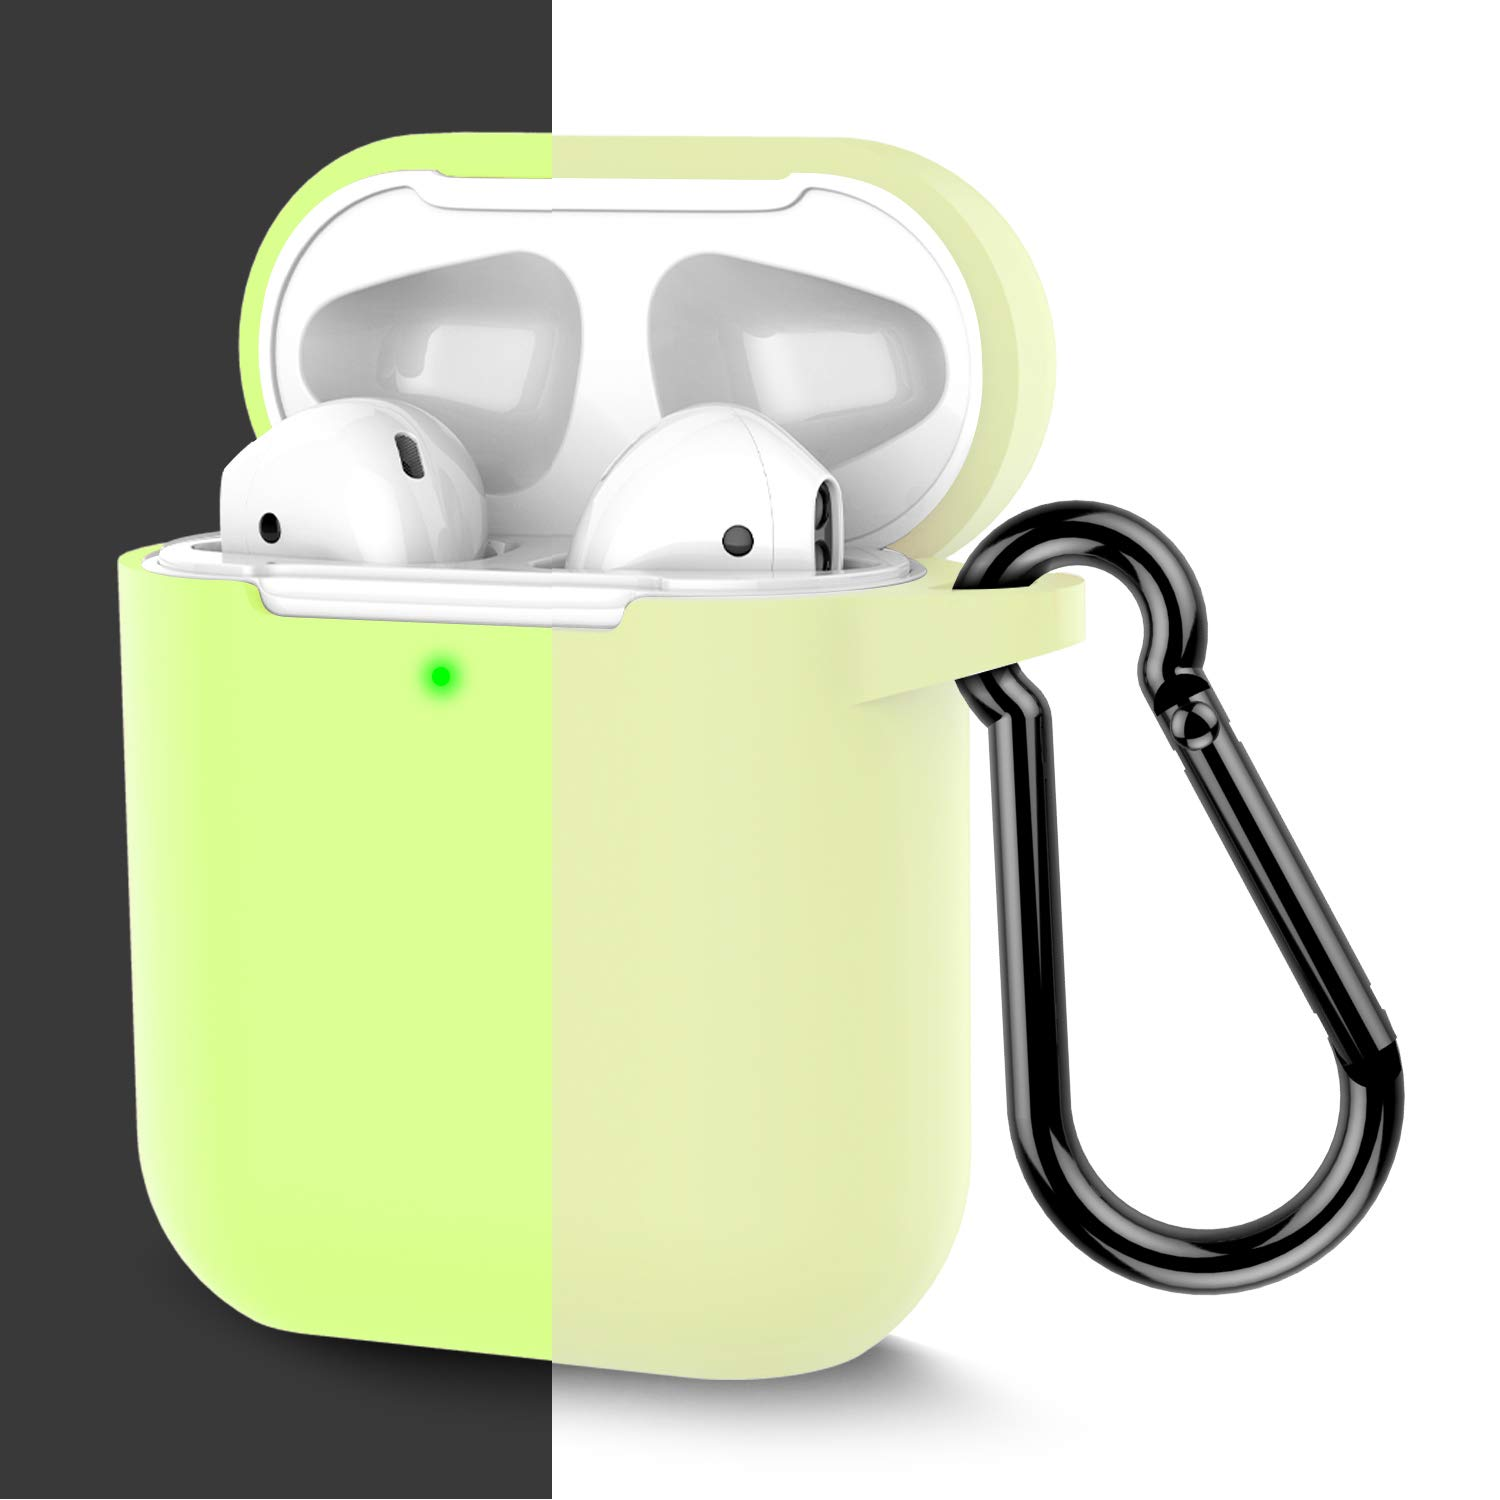 Coffea AirPods Case, Protective Silicone Cover Skin with Keychain for AirPods 2 Wireless Charging Case [Front LED Visible] (Fluorescence)